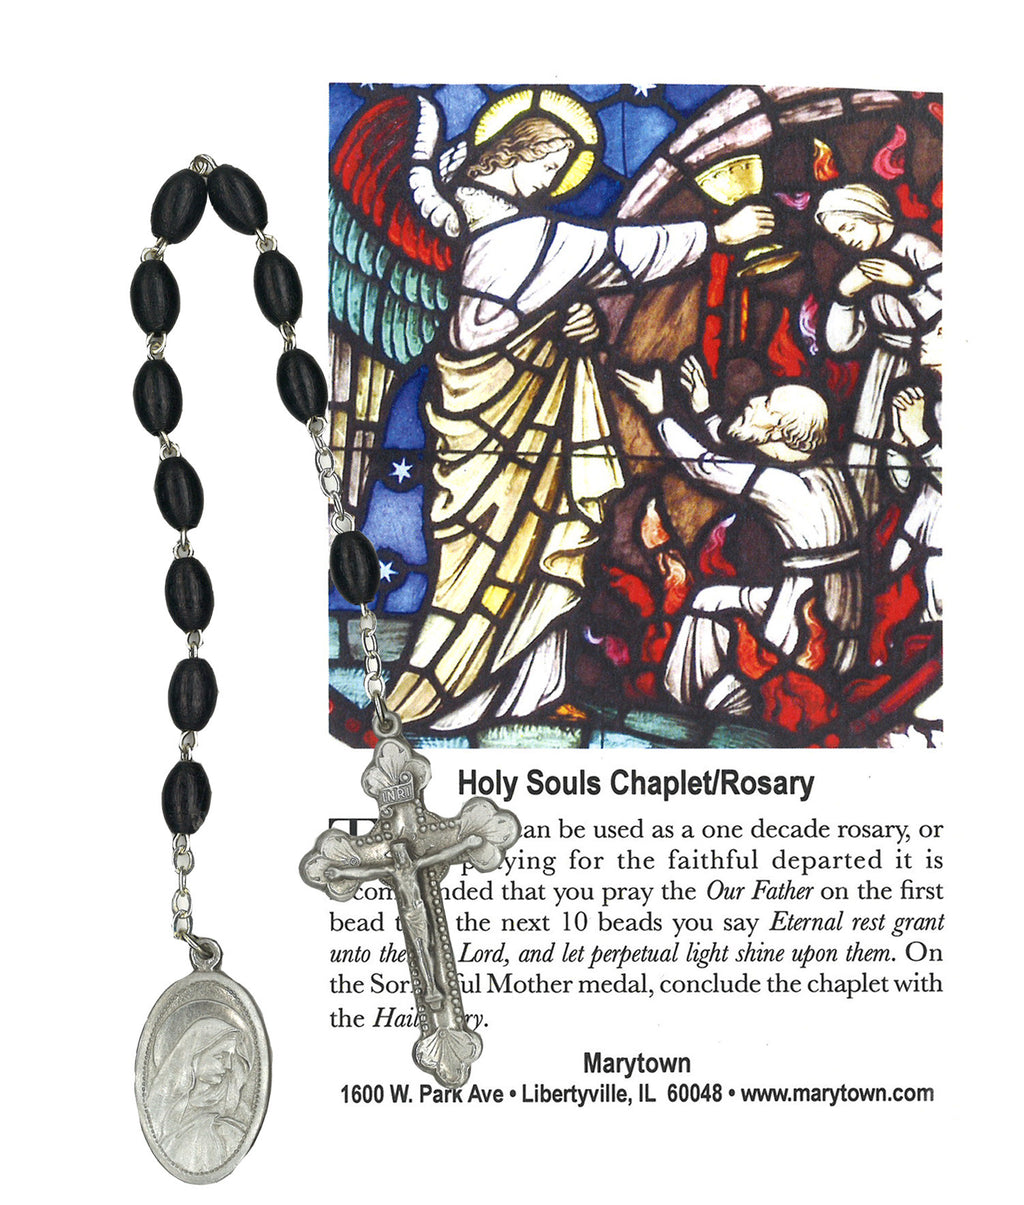 THE HOLY SOULS CHAPLET